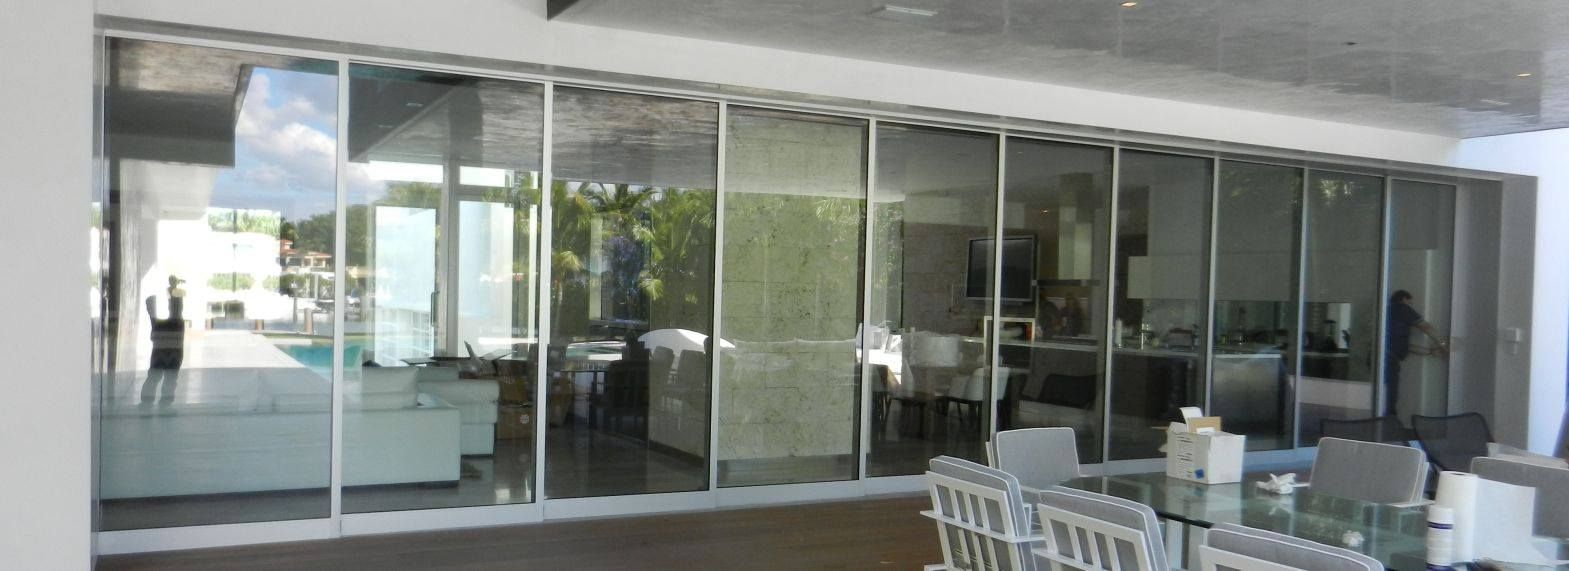 Fleetwood Impact Sliding Doors In Unlimited Widths Panels Up To 5 X 12 Open Double Corners Aluminium Windows And Doors Glass Garage Door Sliding Glass Door